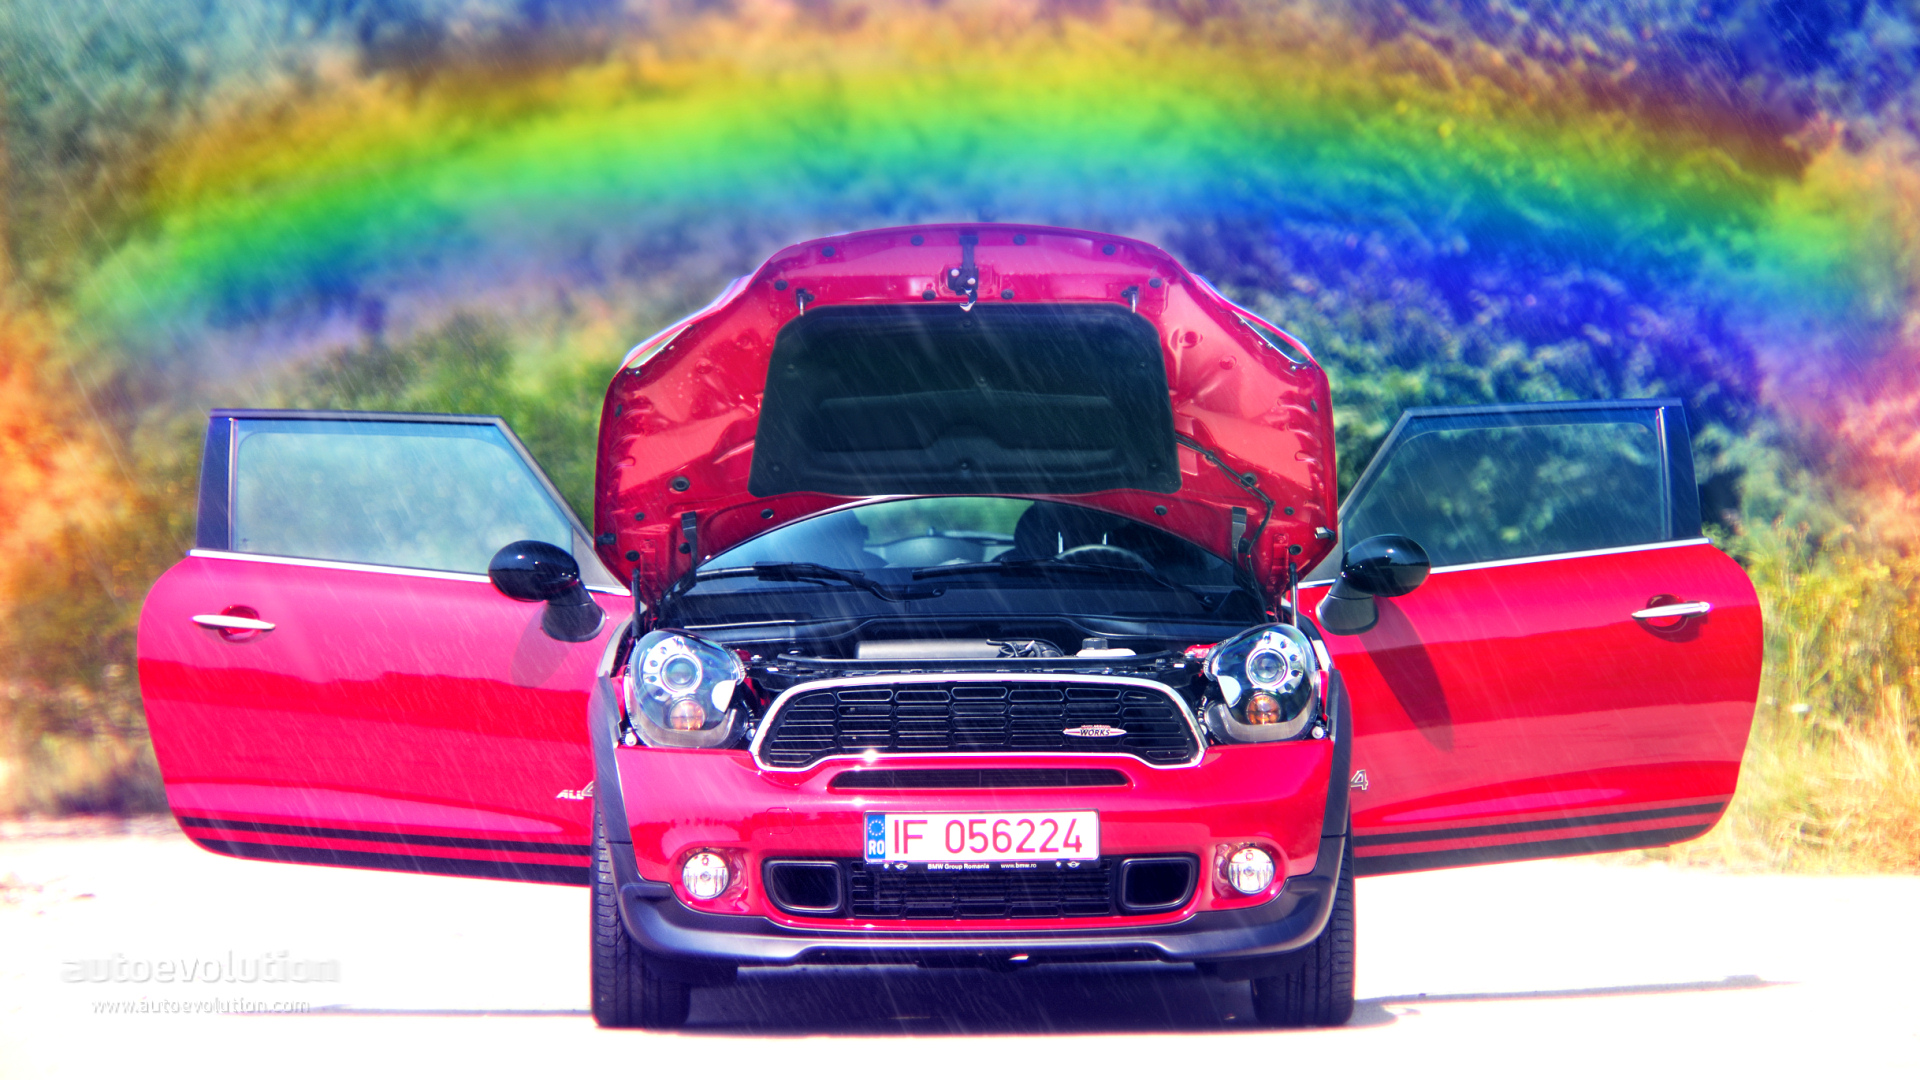 2015 Mini Jcw All4 Paceman Hd Wallpapers Rainbow Your Desktop